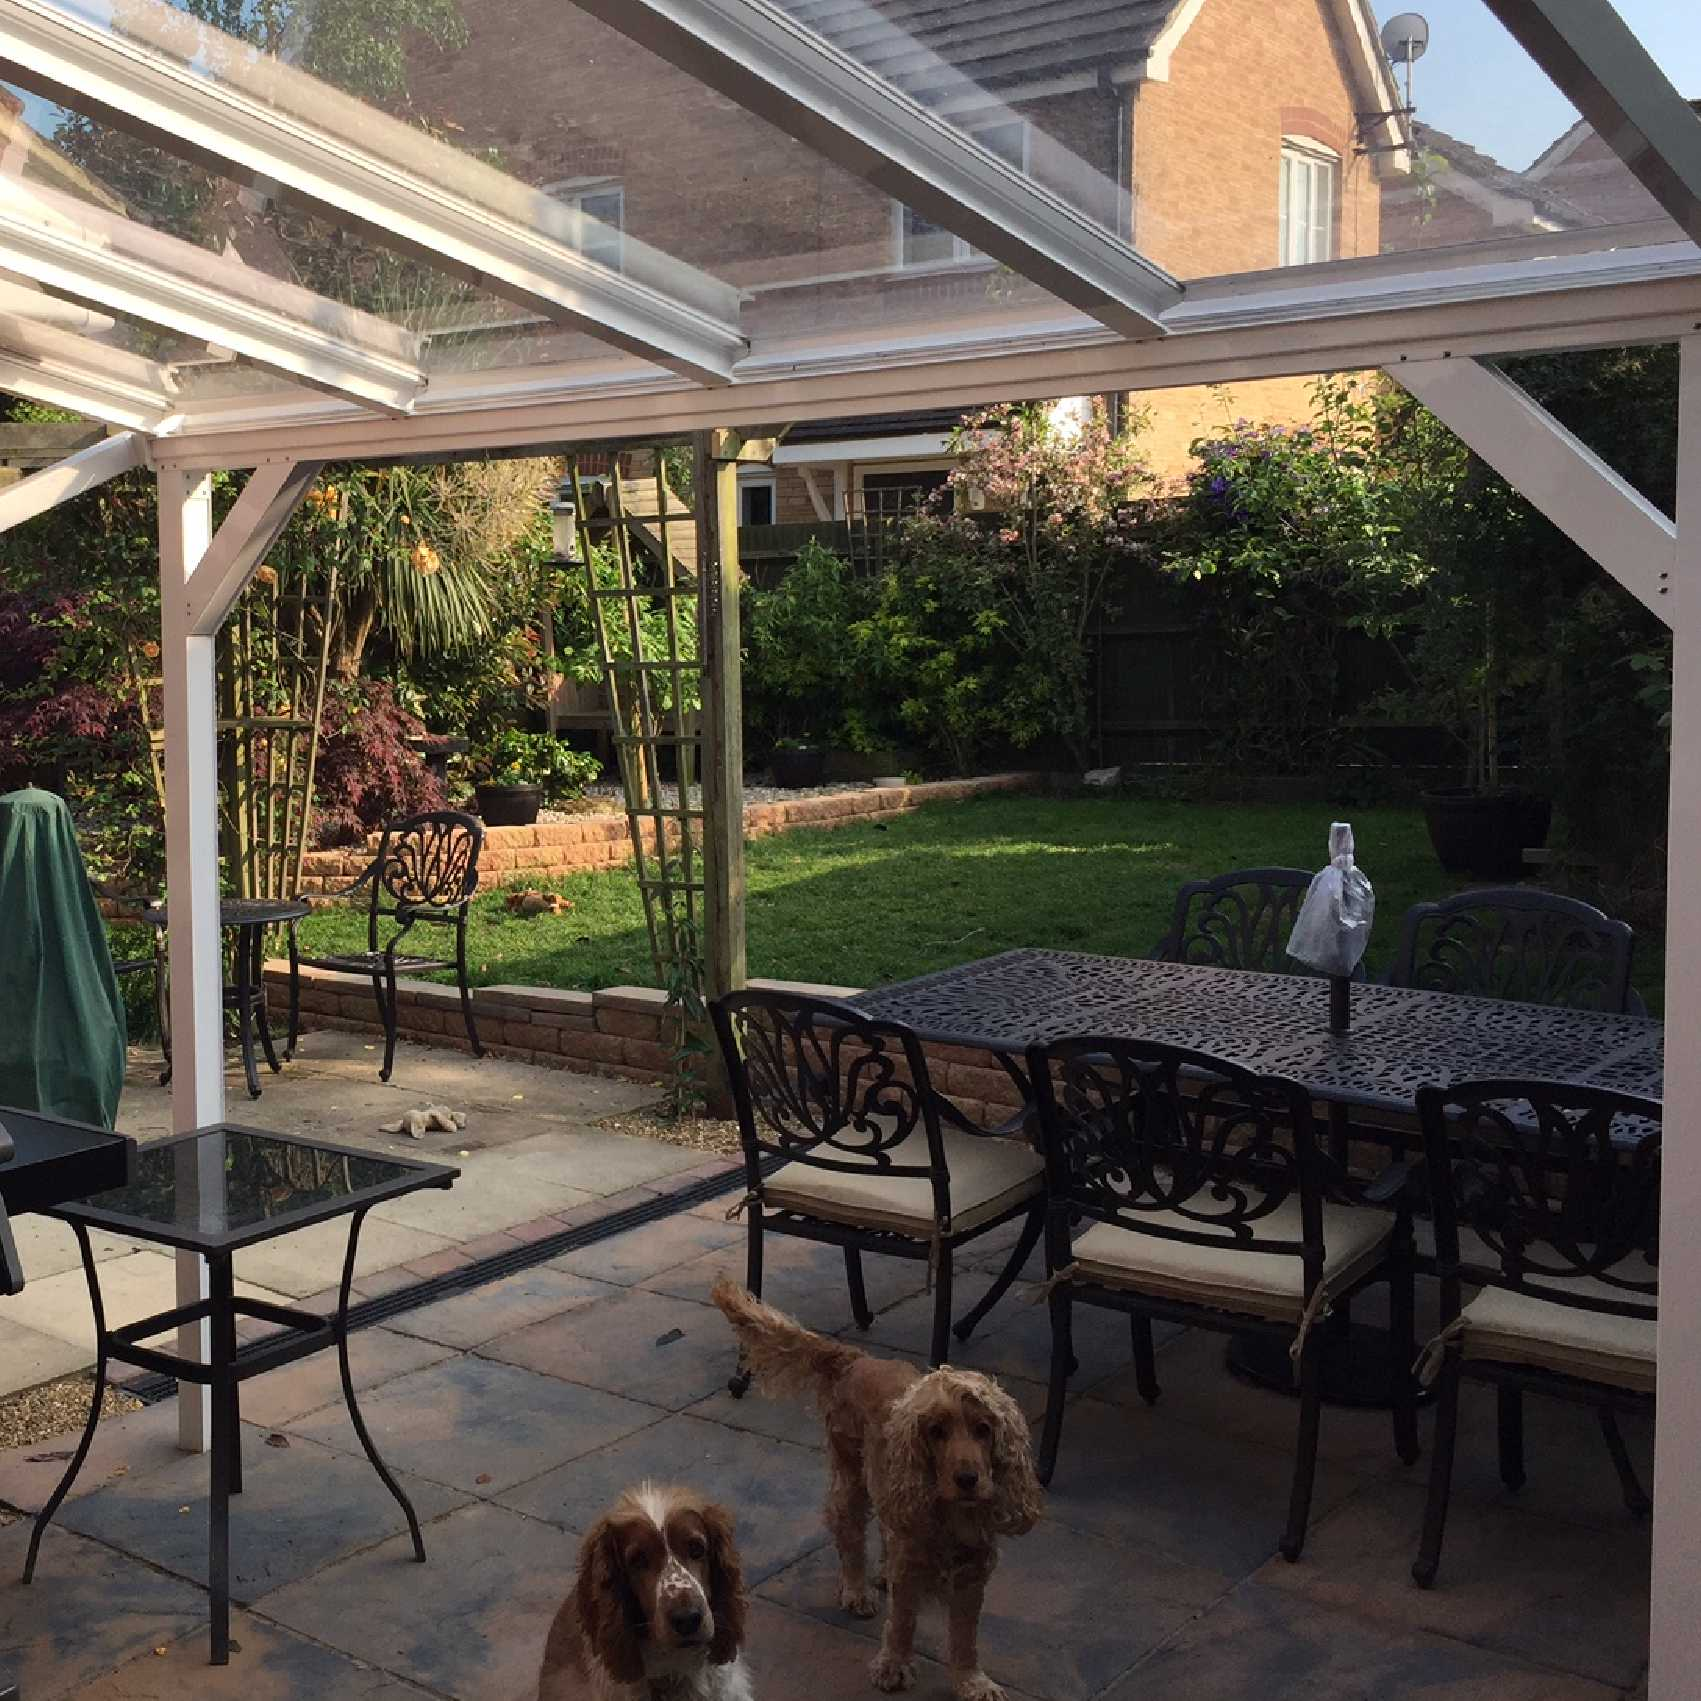 Affordable Omega Smart White Lean-To Canopy with 6mm Glass Clear Plate Polycarbonate Glazing - 9.8m (W) x 1.5m (P), (5) Supporting Posts